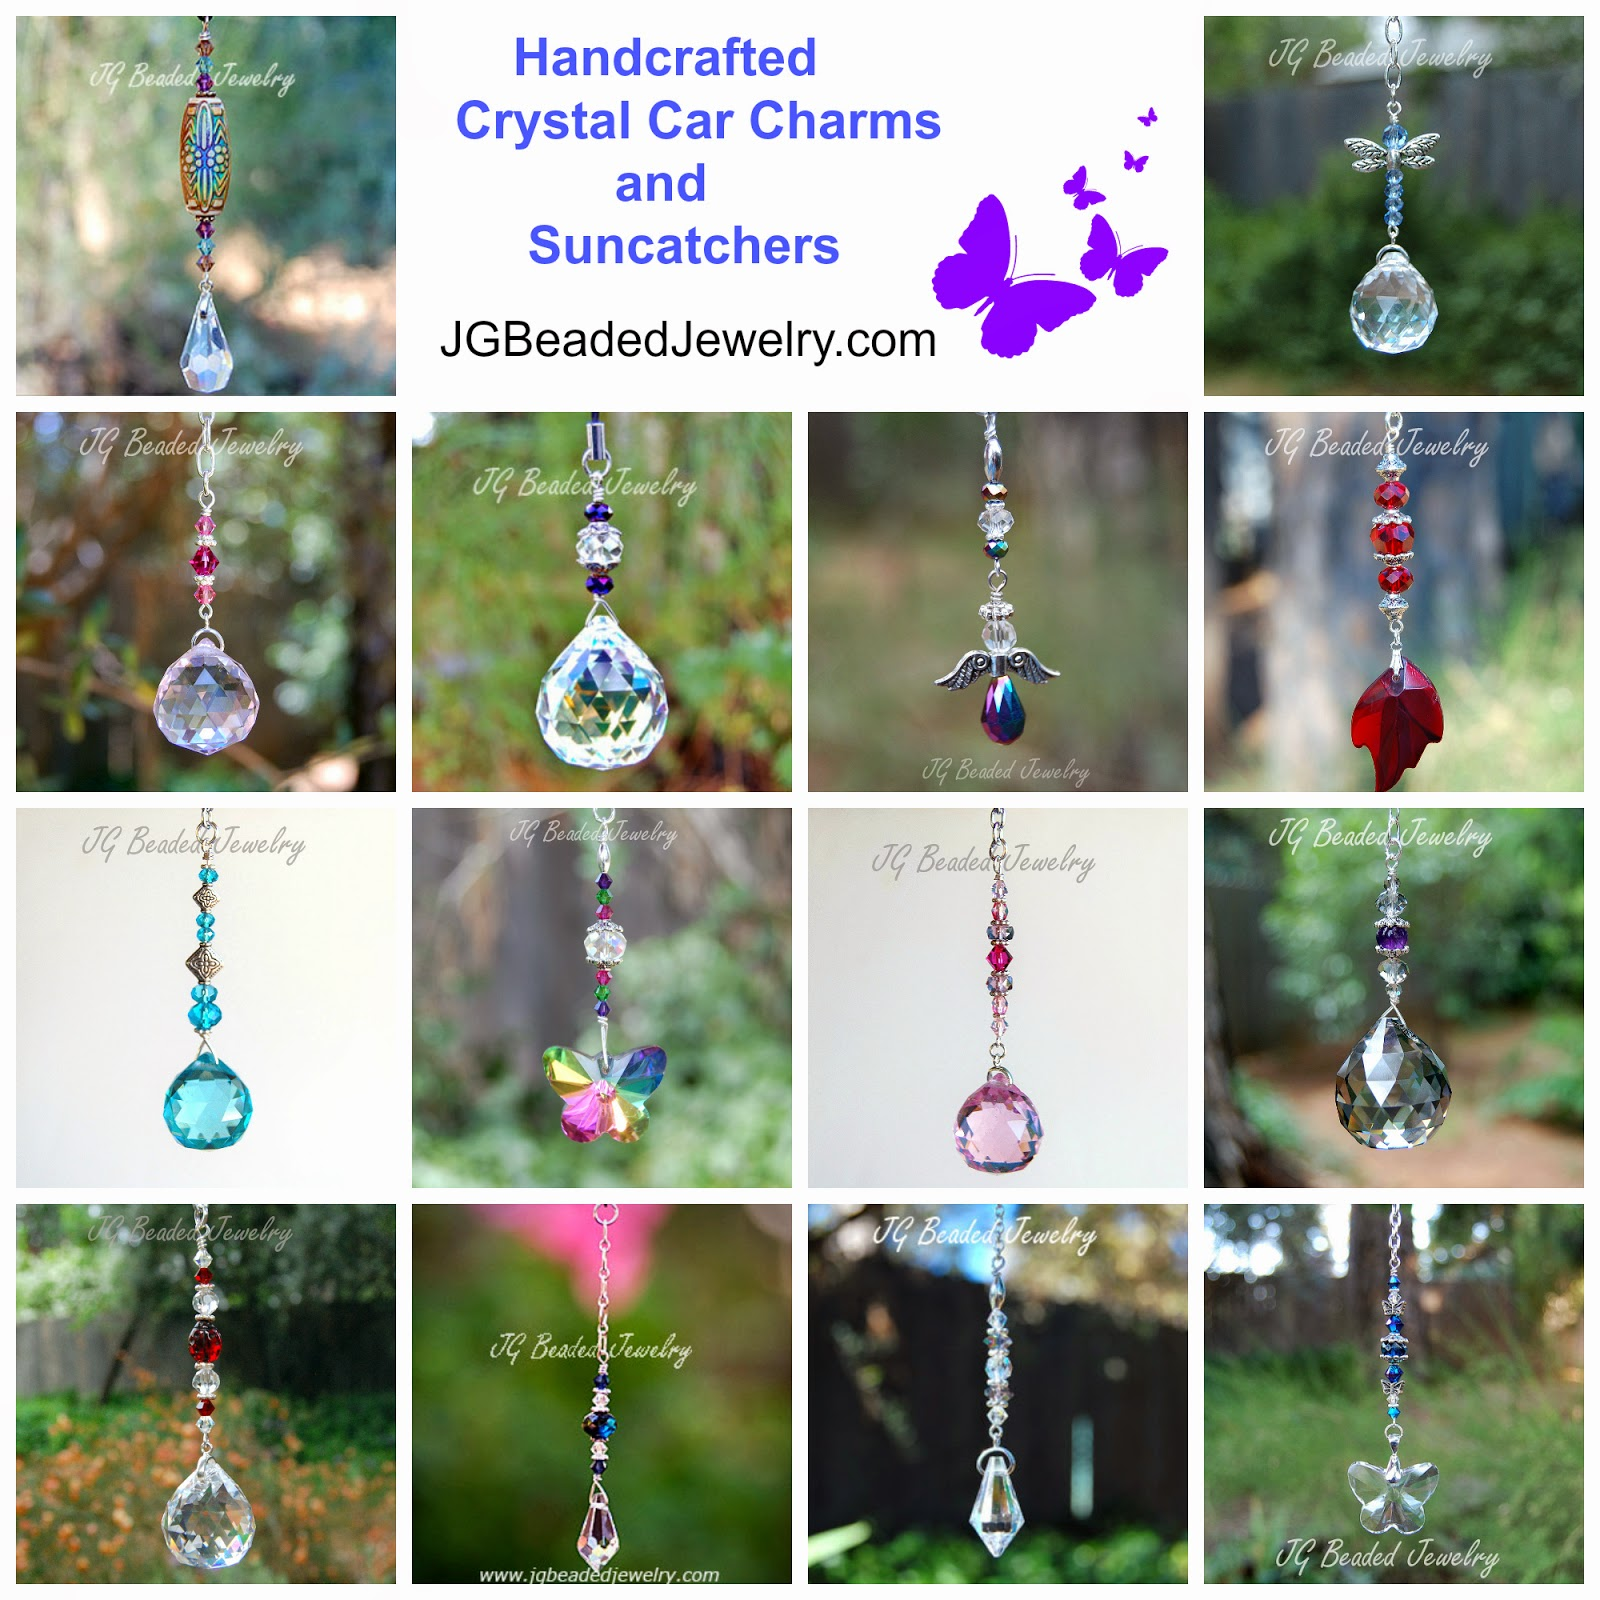 Jg Beaded Jewelry Rearview Mirror Crystal Car Charms And Suncatchers